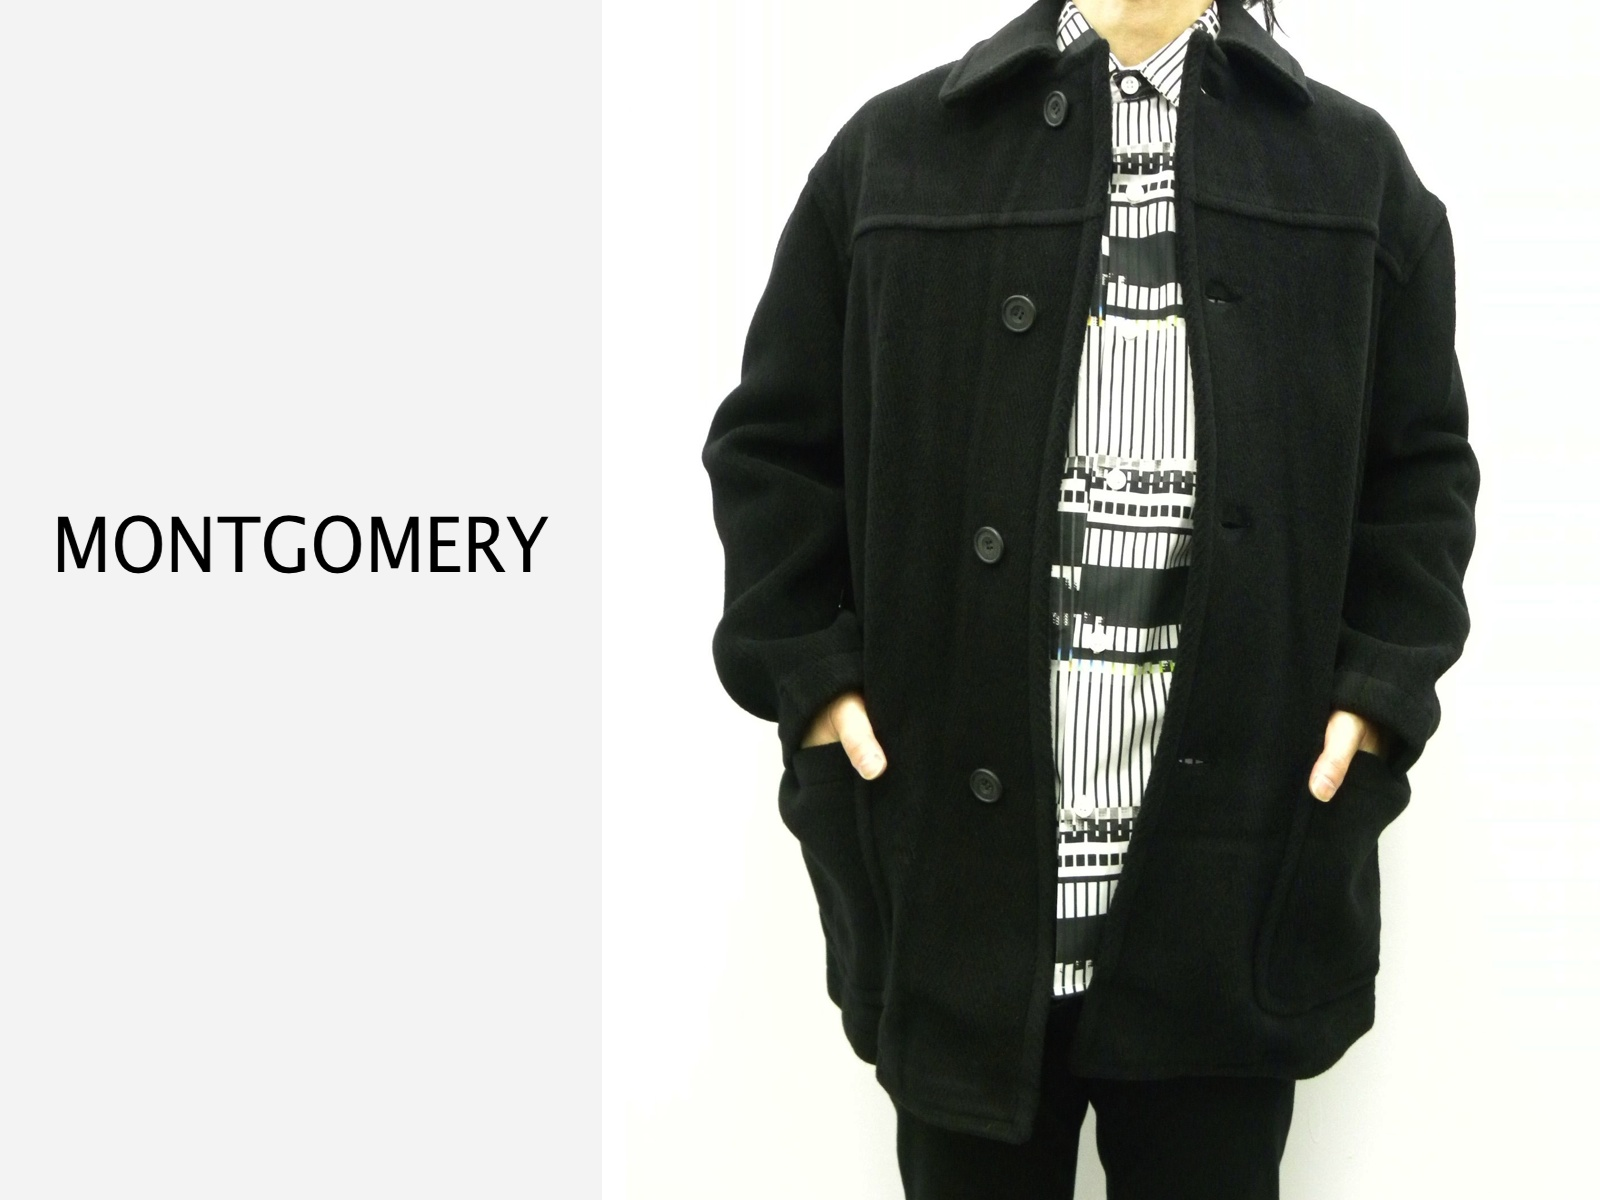 MONTGOMERY WOOL COAT